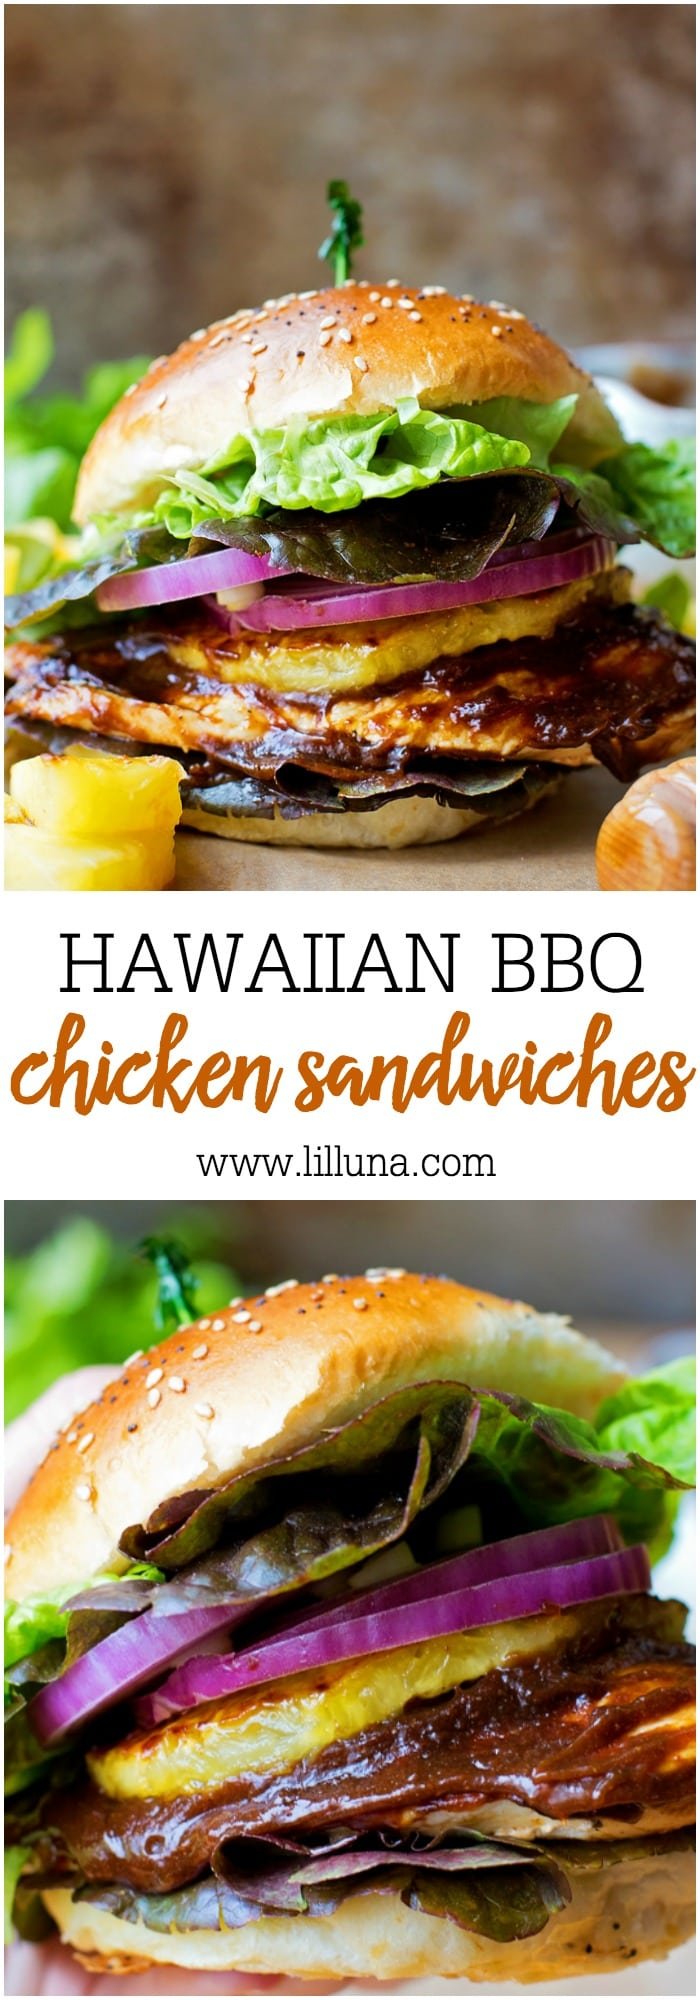 Hawaiian BBQ Chicken Sandwiches - simple, delicious and perfect for your next BBQ!